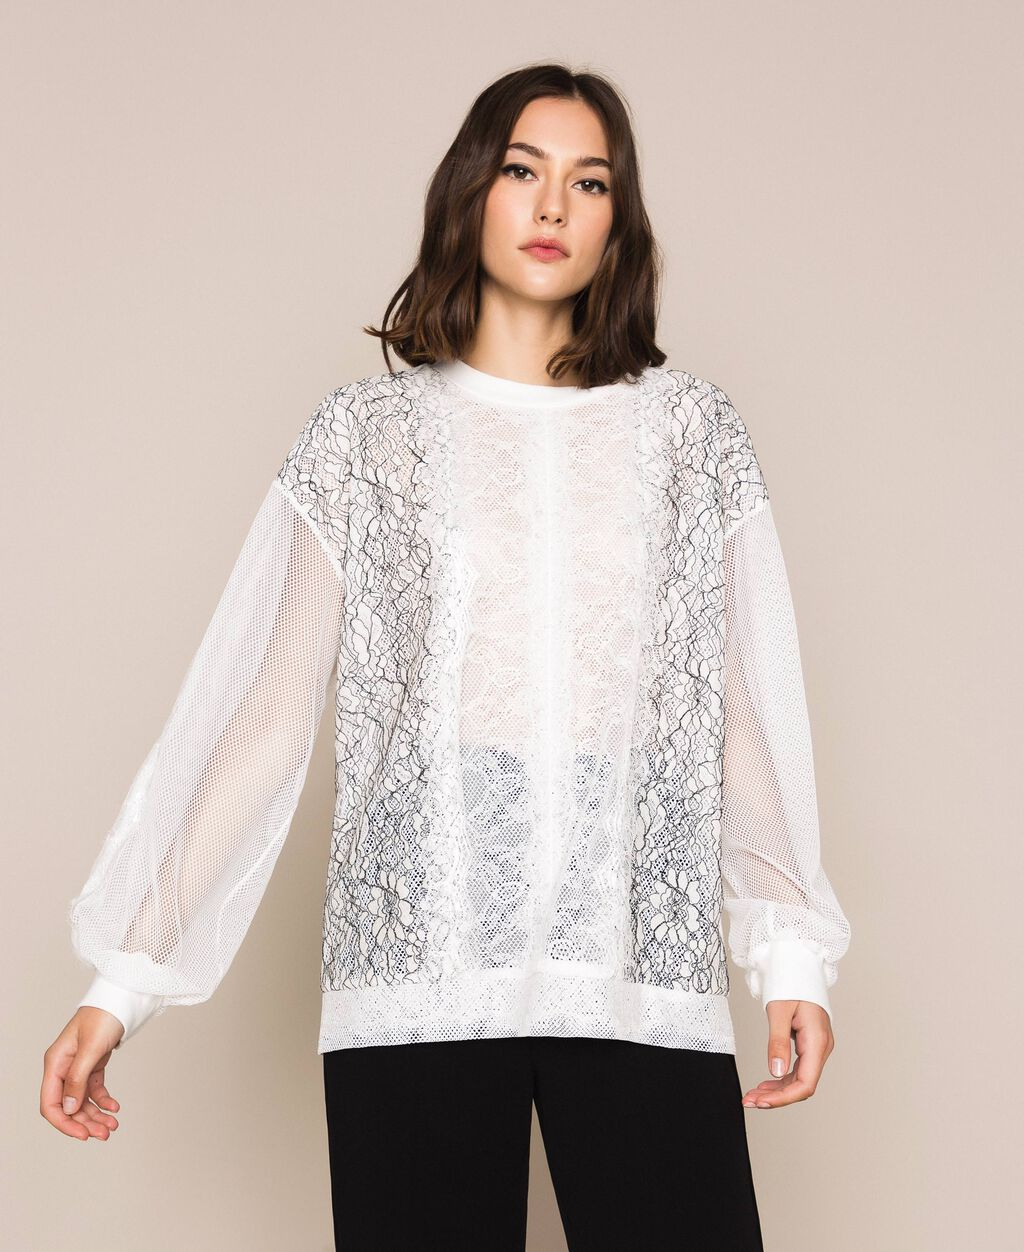 Sweatshirt with mixed mesh and lace